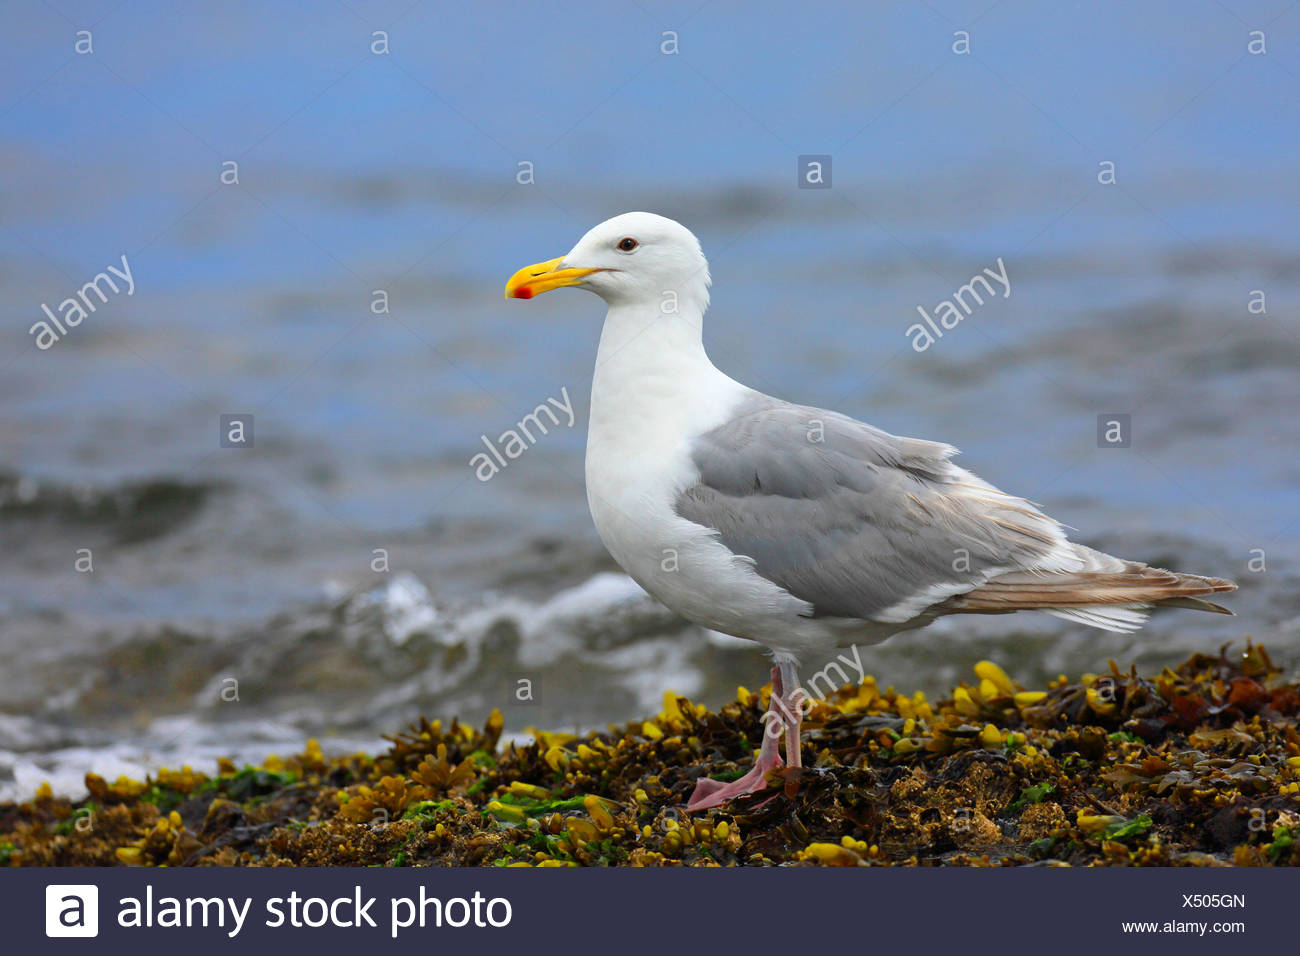 glaucous-winged gull (Larus glaucescens), standing on seaweeds at the seaside, Canada, British Columbia, Victoria - Stock Image